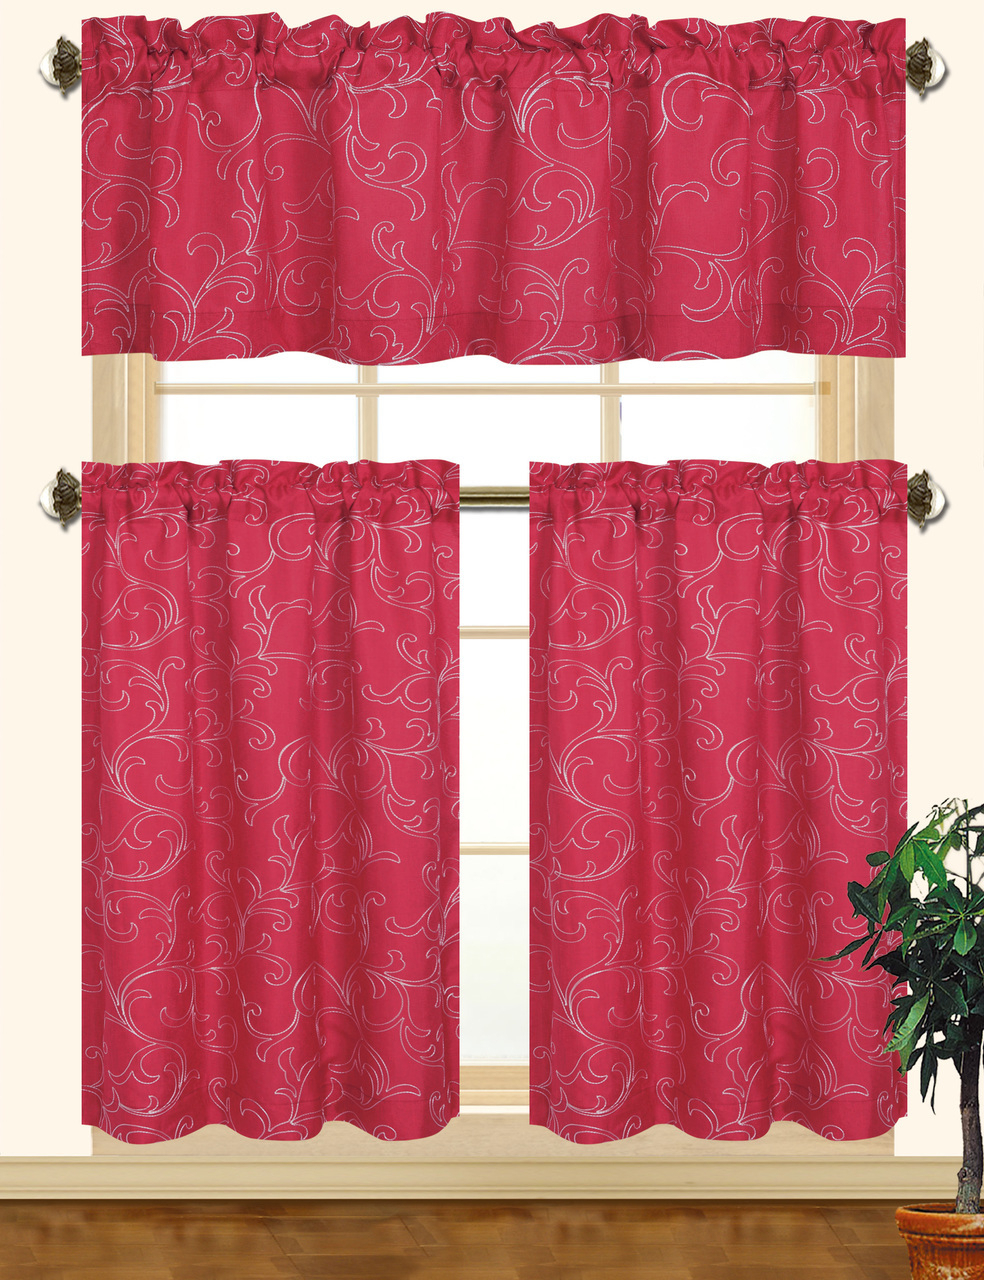 Kashi Home Chelsea 3pc Scroll Embroidered Decorative Kitchen Curtain Set (burgundy/white) Within Kitchen Burgundy/white Curtain Sets (View 6 of 20)